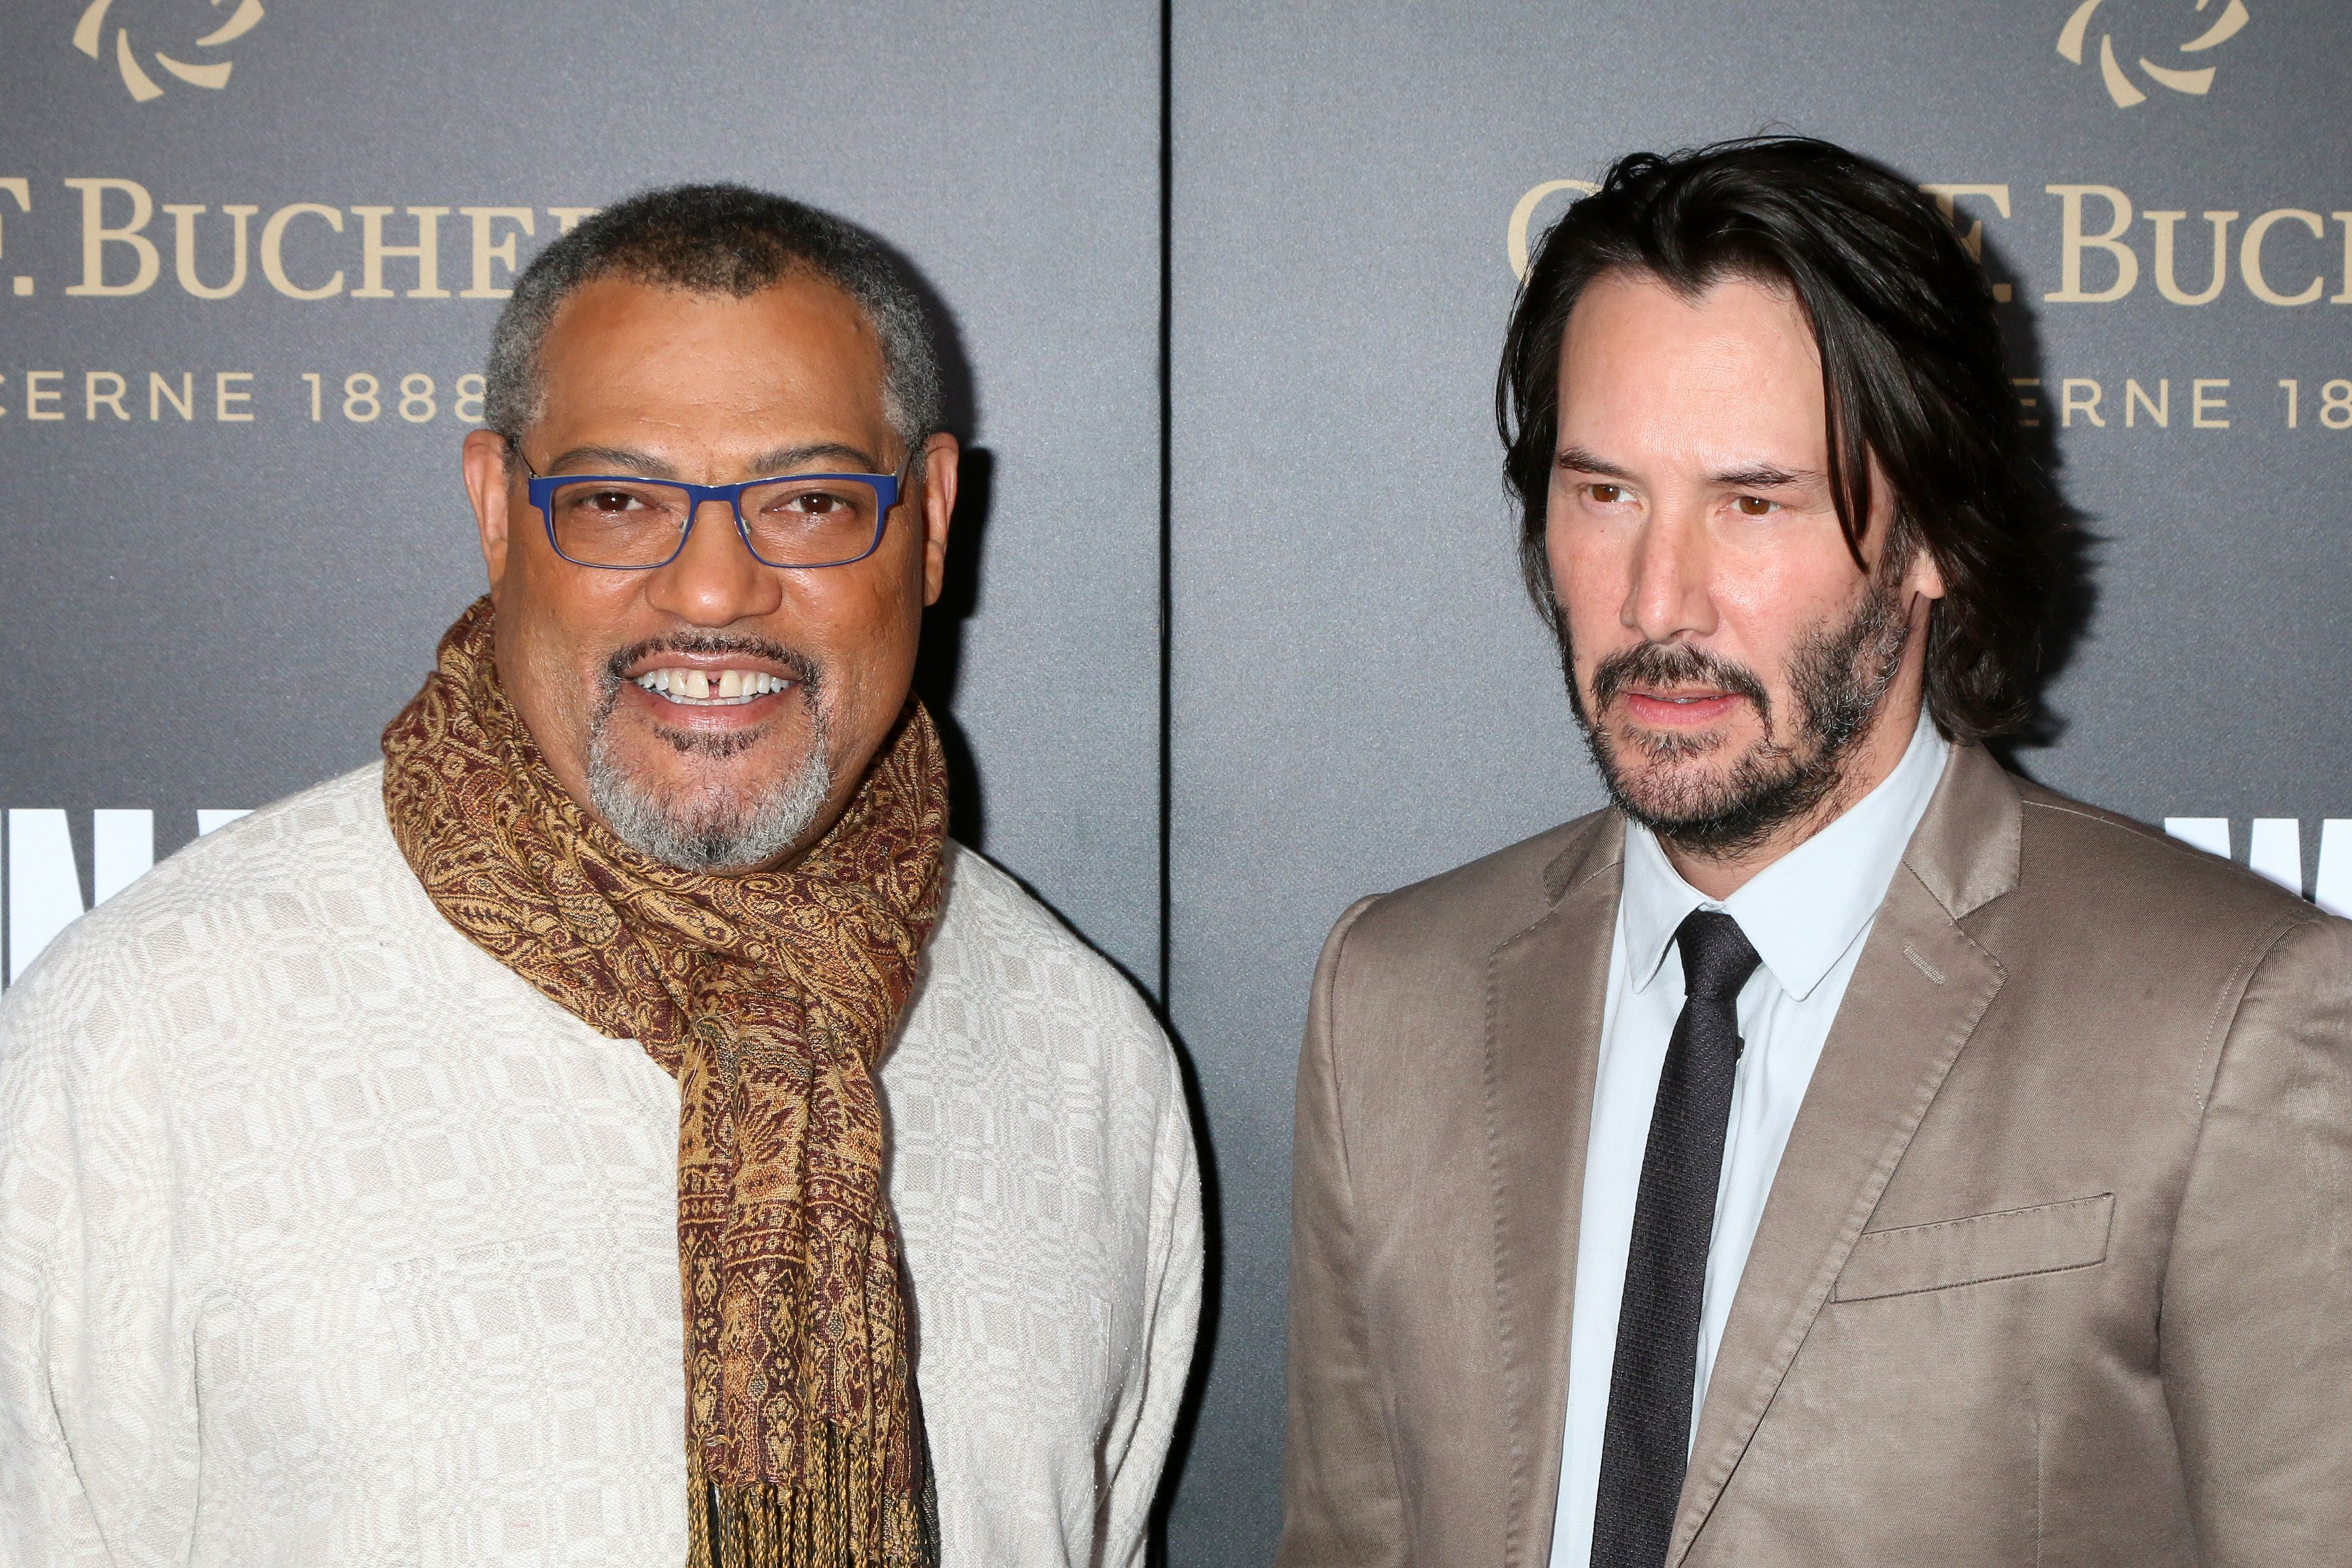 Laurence Fishburne with Keanu Reeves